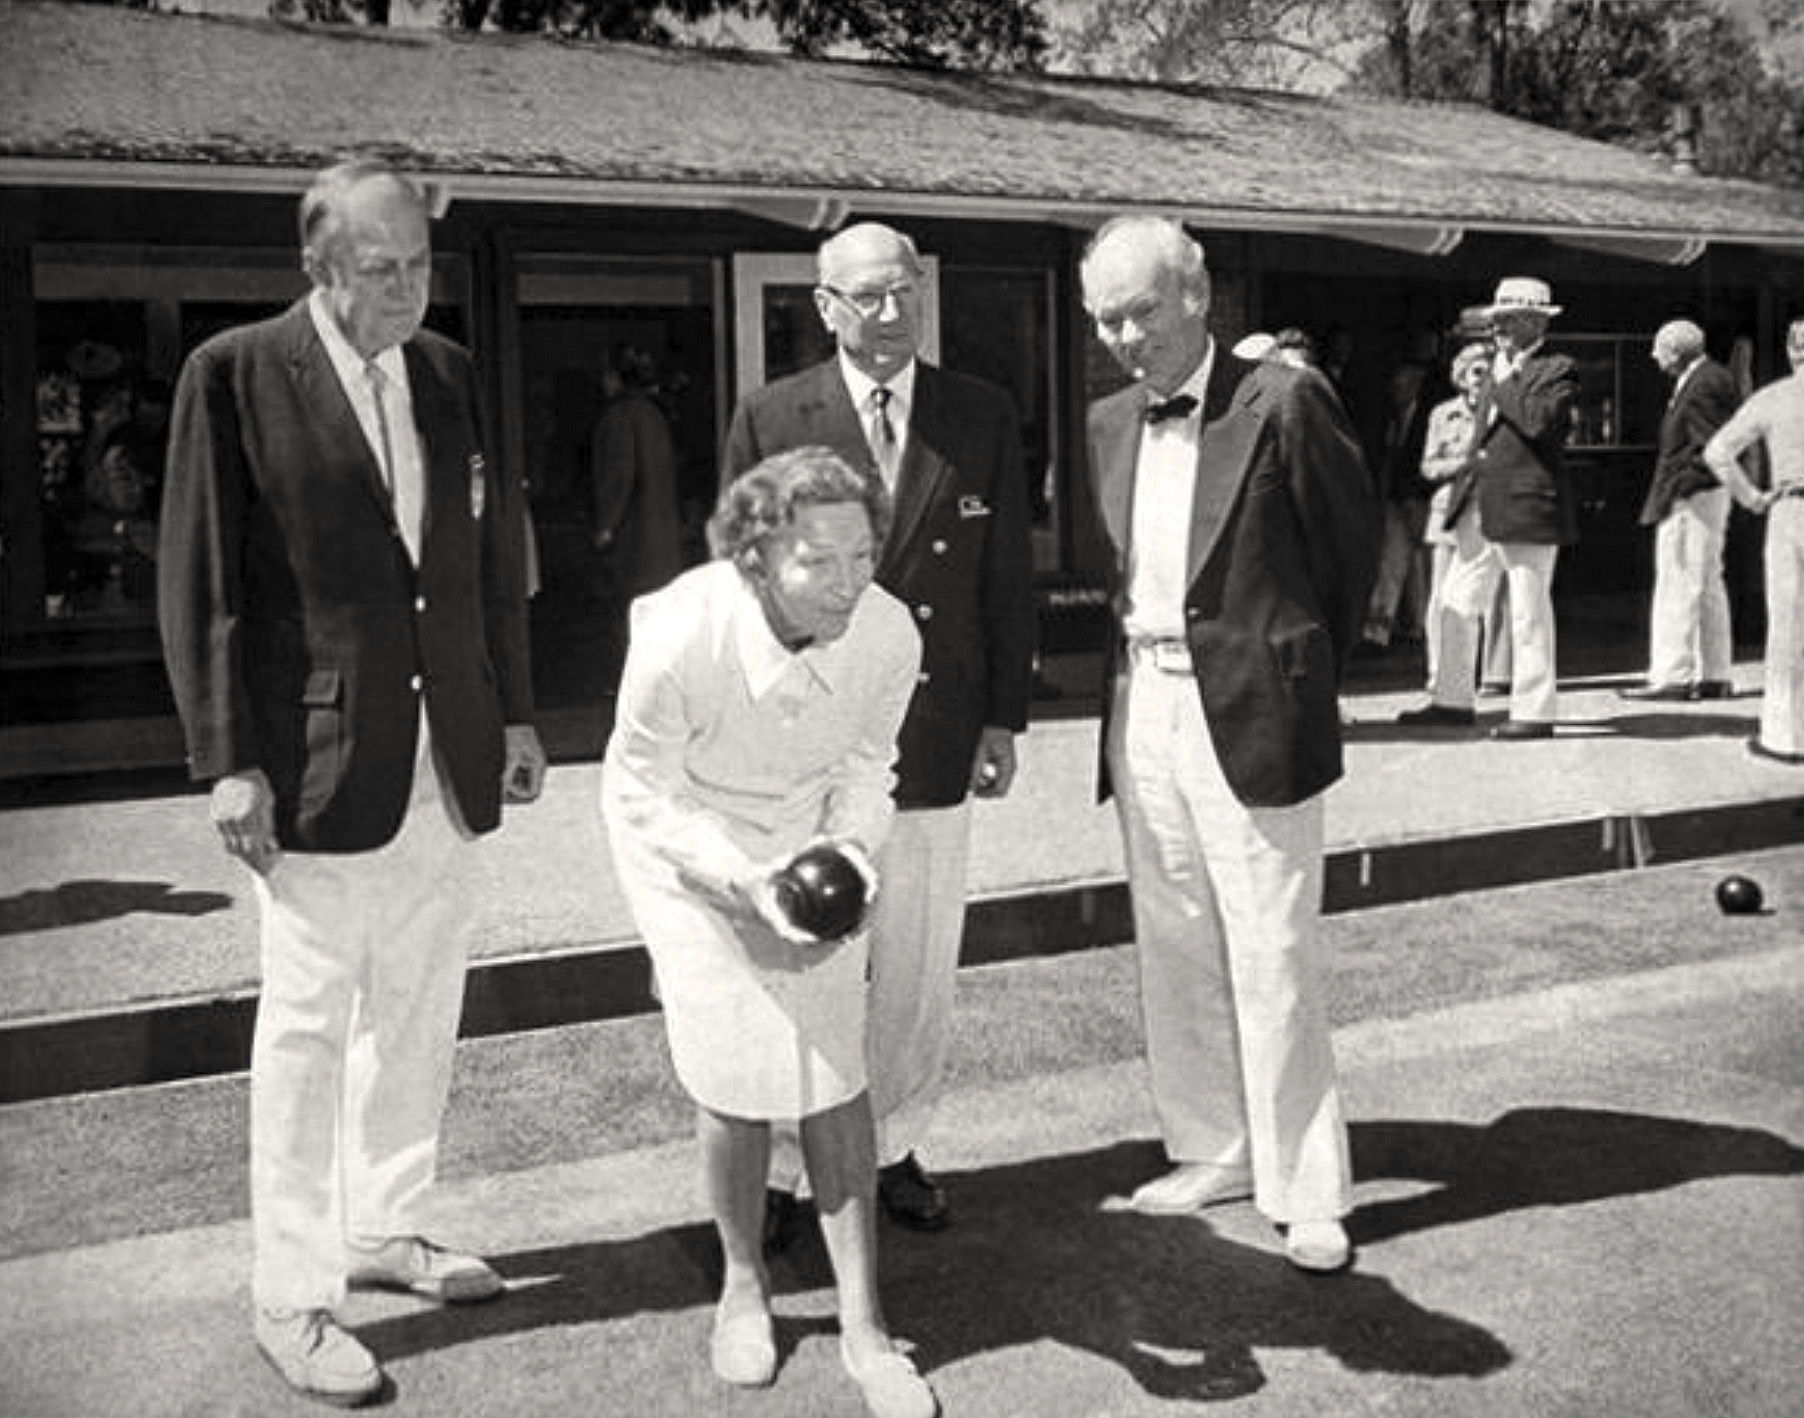 1974 Club president Paul Houseman (center), Monty Moncure (left), and Floyd Carpenter (right) look on as Gertrude Cobb prepares to bowl. The newly enlarged clubhouse is in the background. PAHA photo.